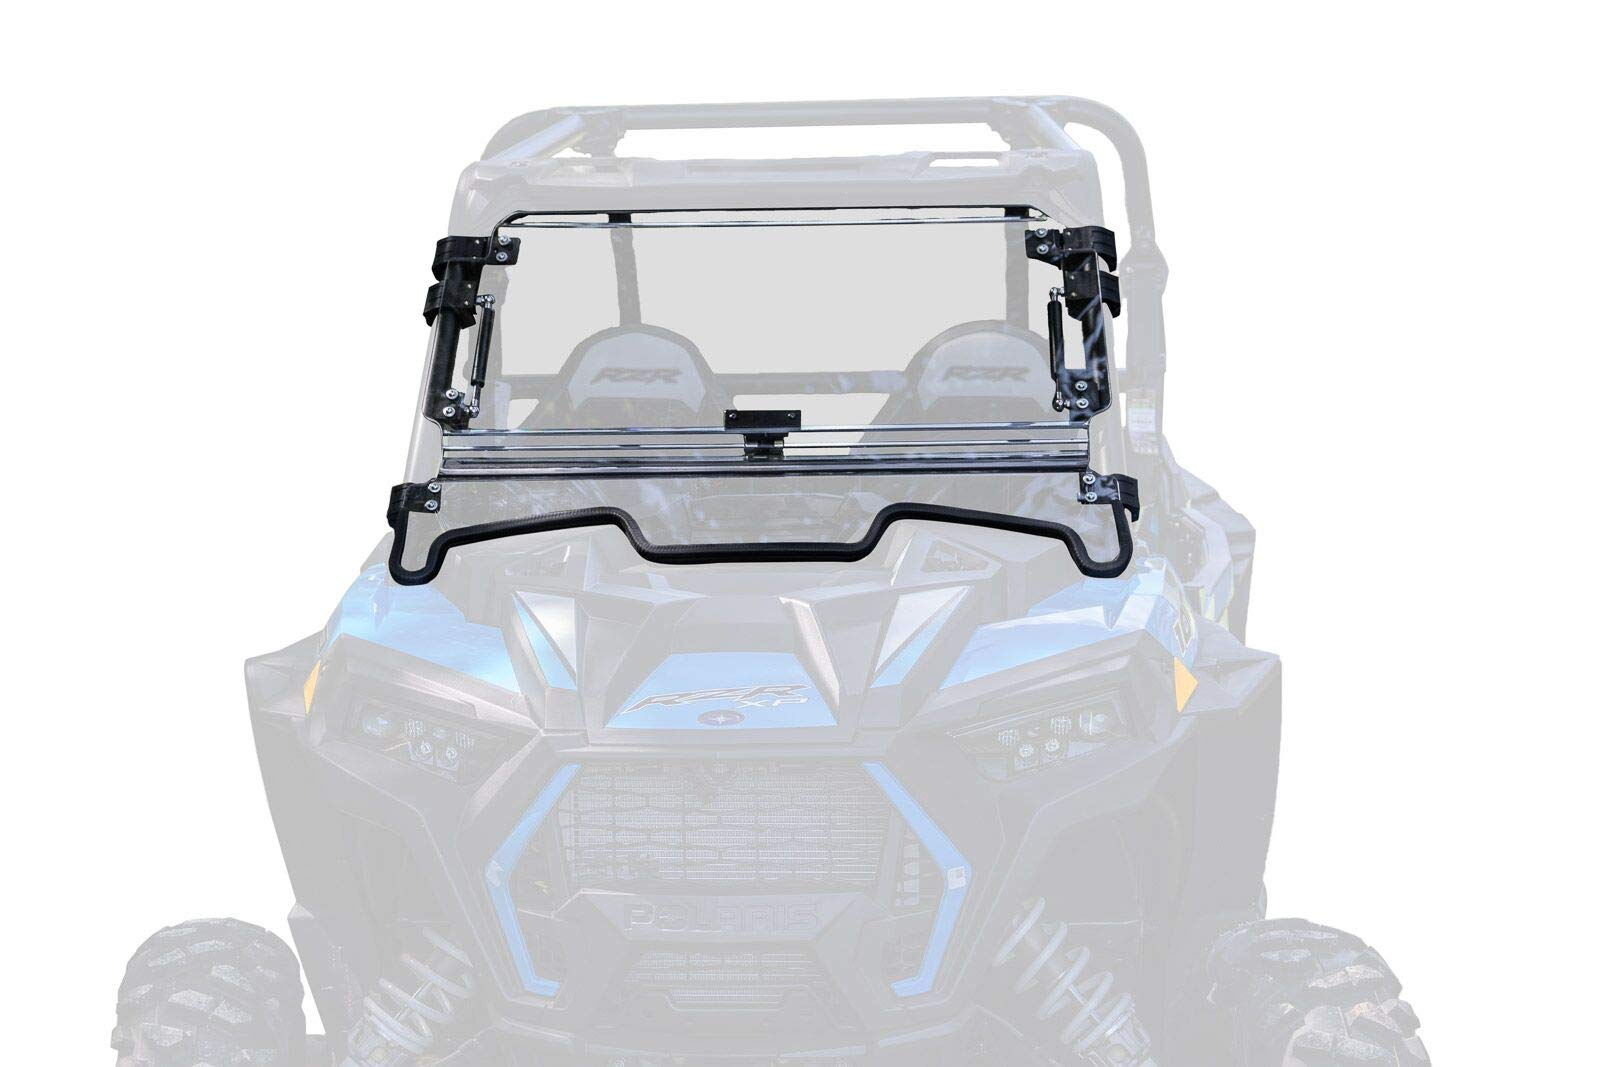 SuperATV Heavy Duty Standard 3-IN-1 Flip Windshield for Polaris RZR XP 1000 / XP 4 1000 (2019+) - Has 3 Different Settings!